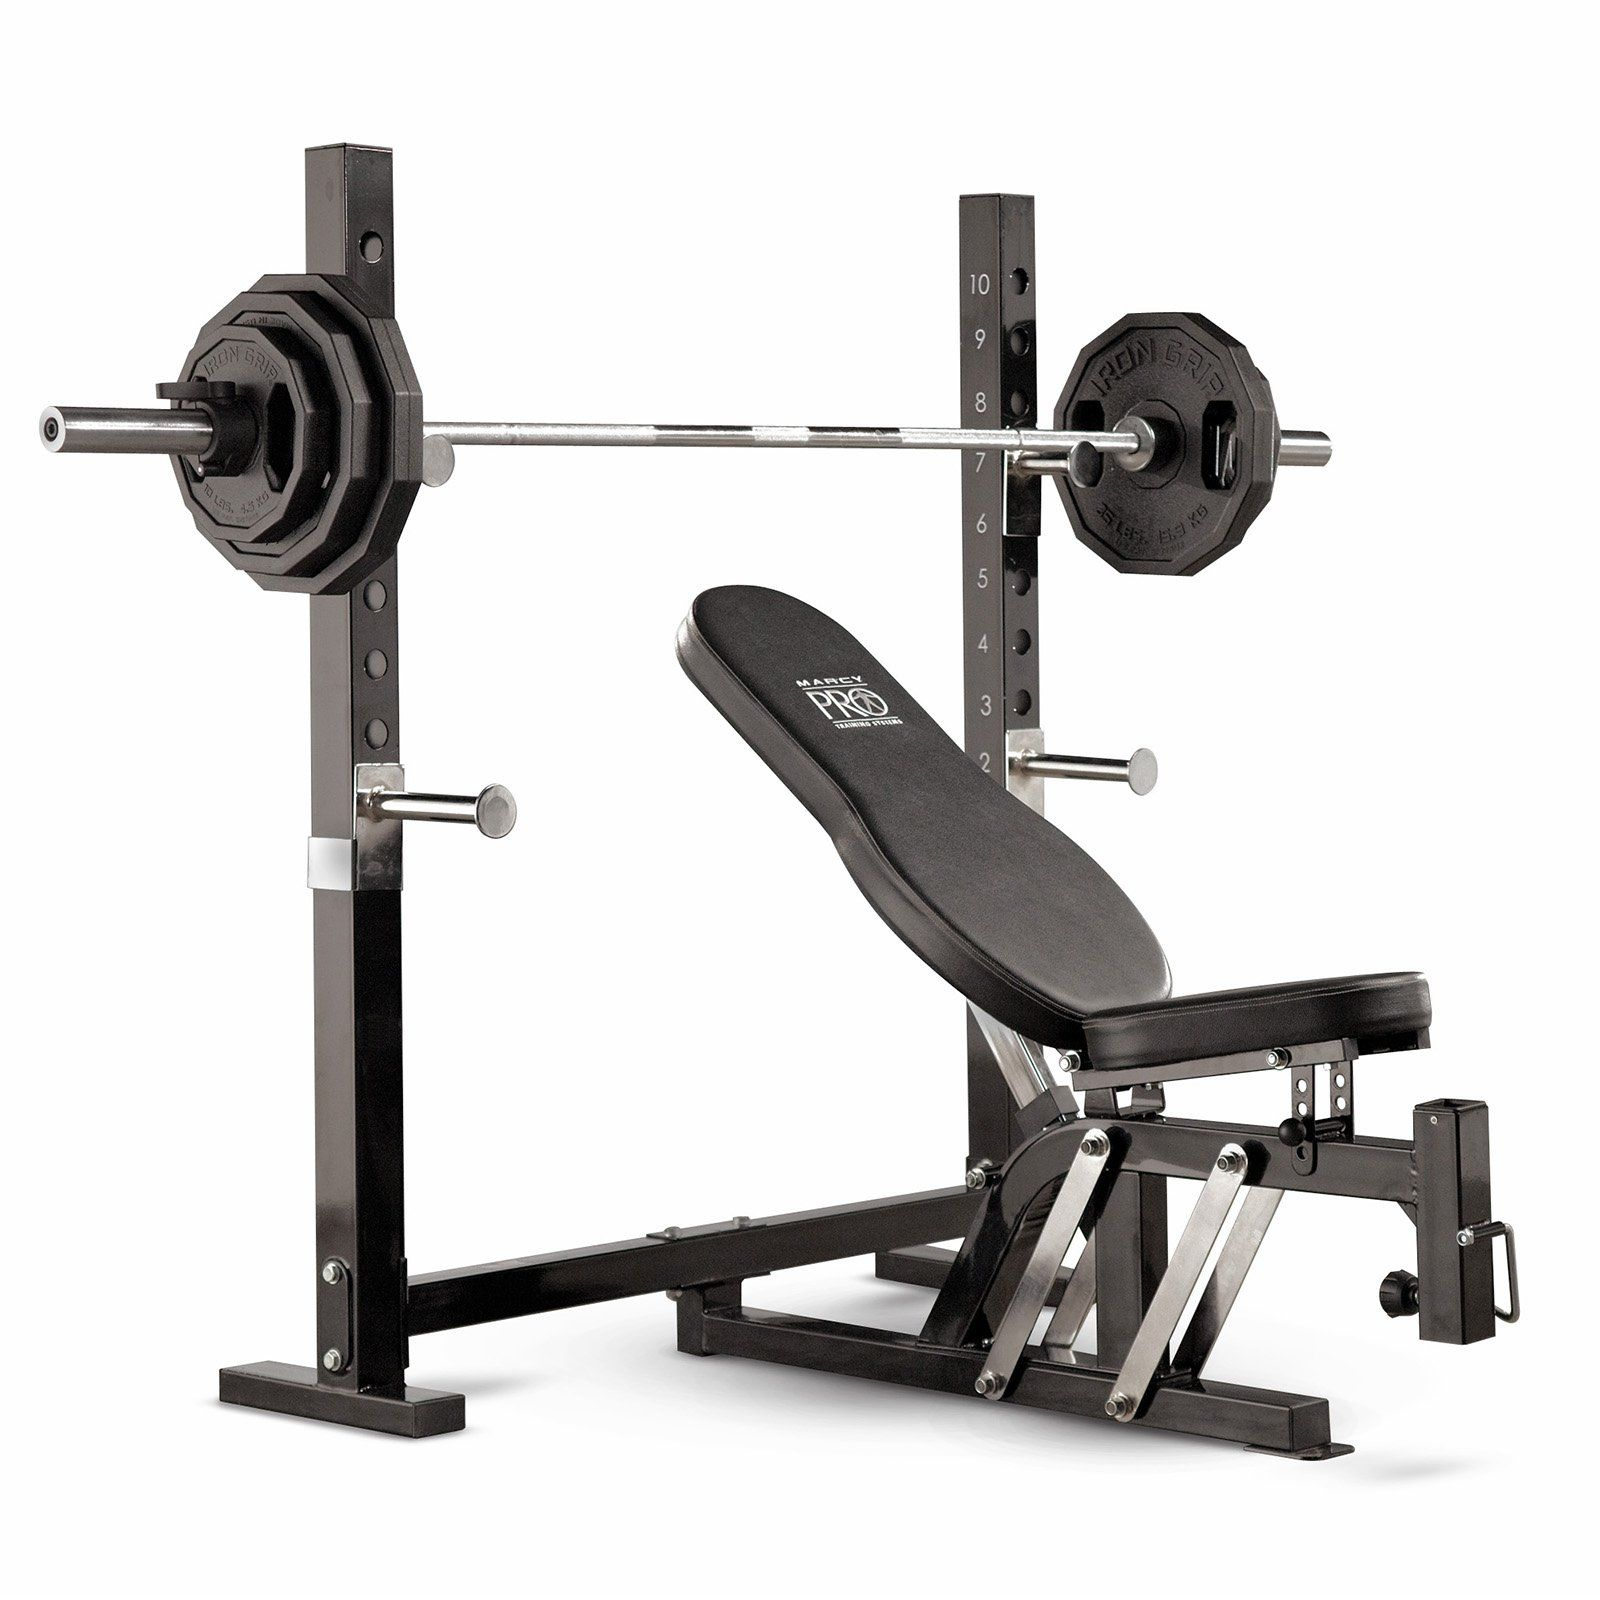 Marcy Pro Olympic Weight Bench Www Hayneedle Com Olympic Weights Weight Benches No Equipment Workout